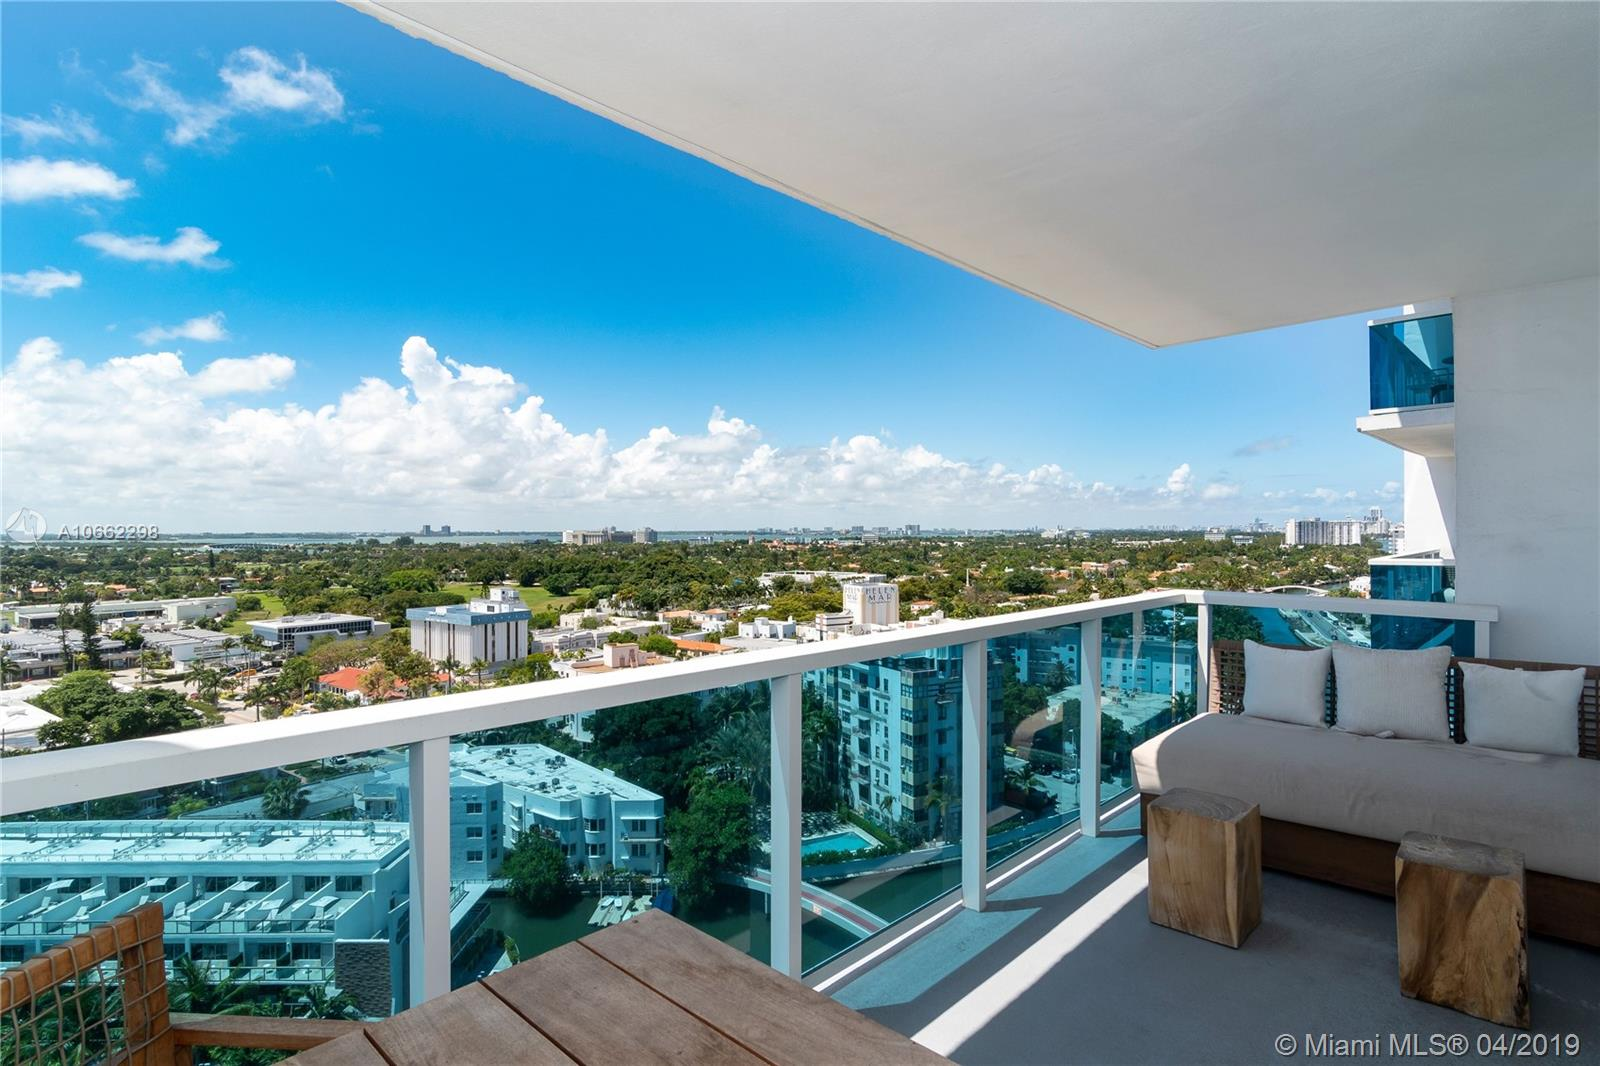 102 24th St # 1531, Miami Beach, Florida 33139, 1 Bedroom Bedrooms, ,2 BathroomsBathrooms,Residential,For Sale,102 24th St # 1531,A10662298